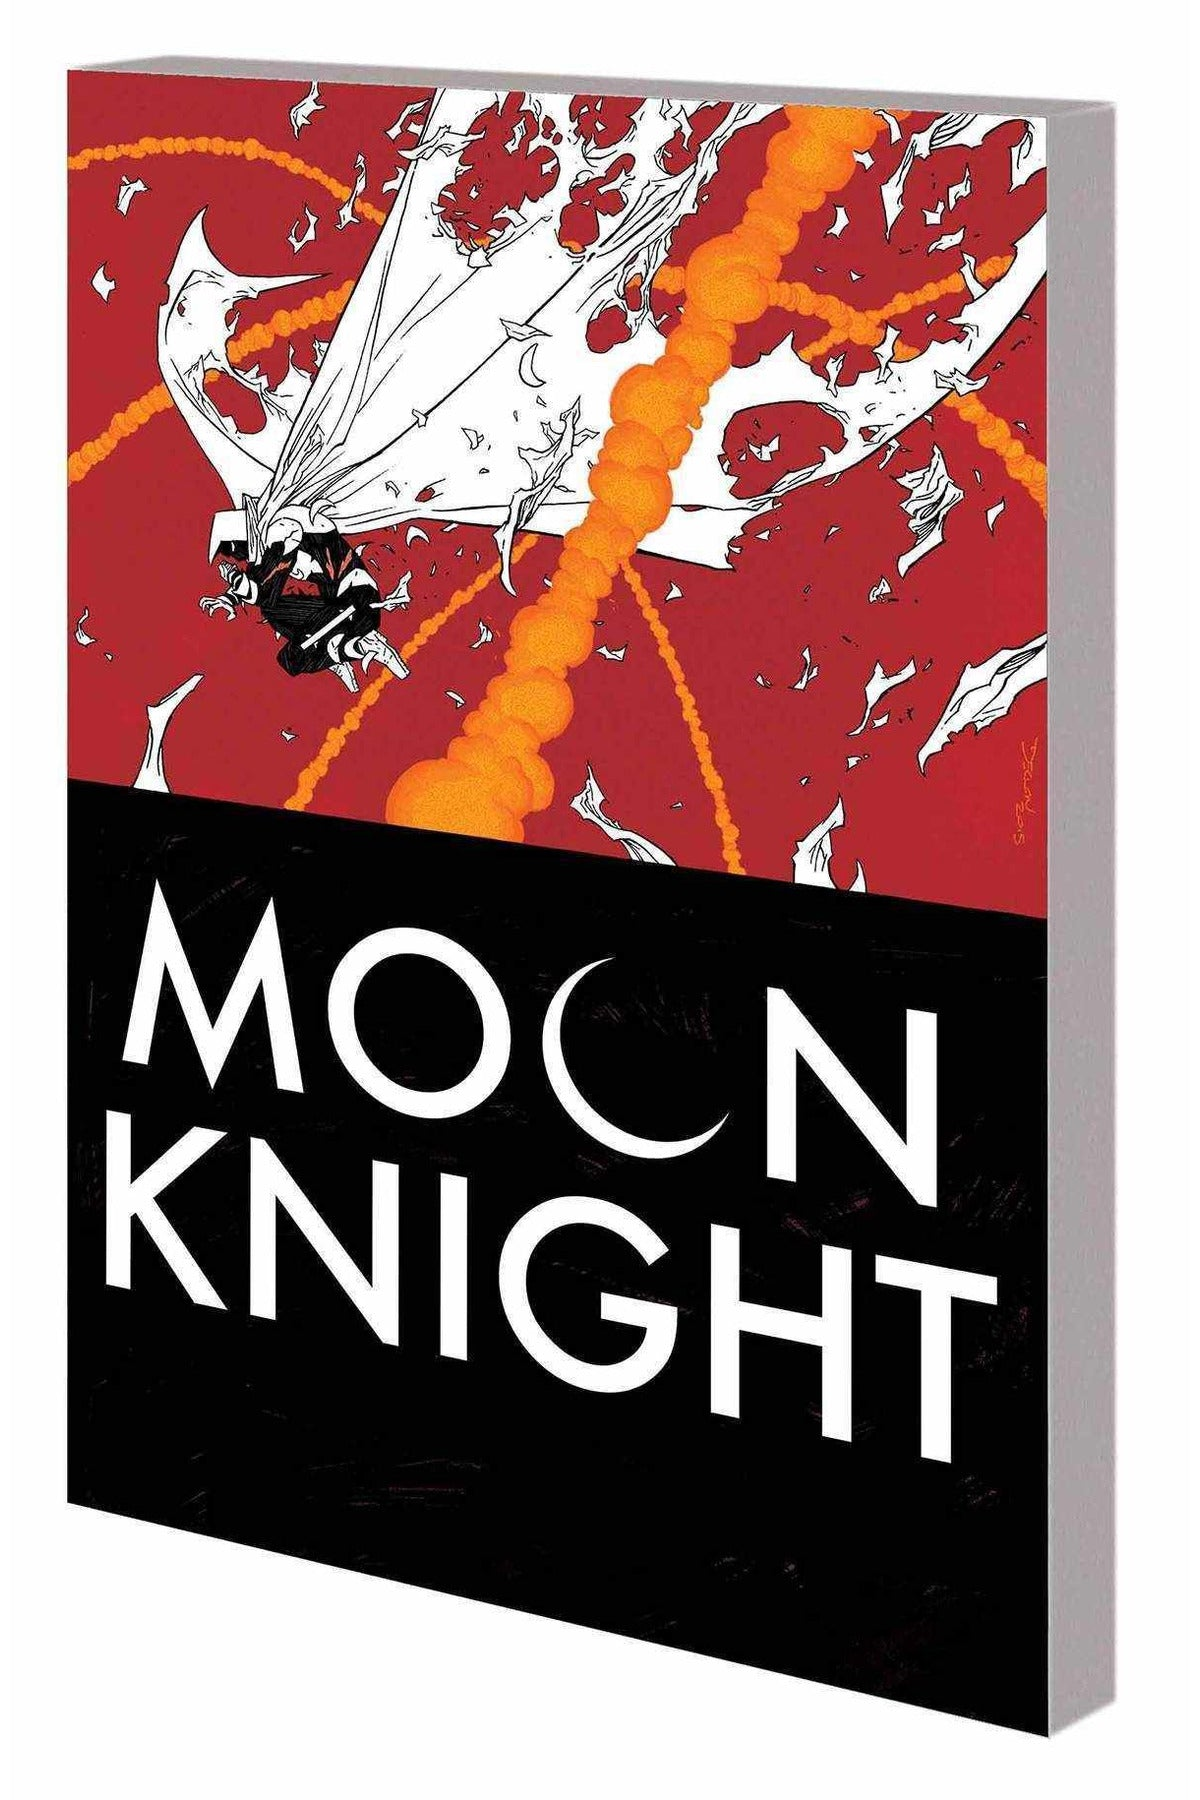 moon-knight-vol-3-in-night-diamond-9780785197348-thegamersden.com